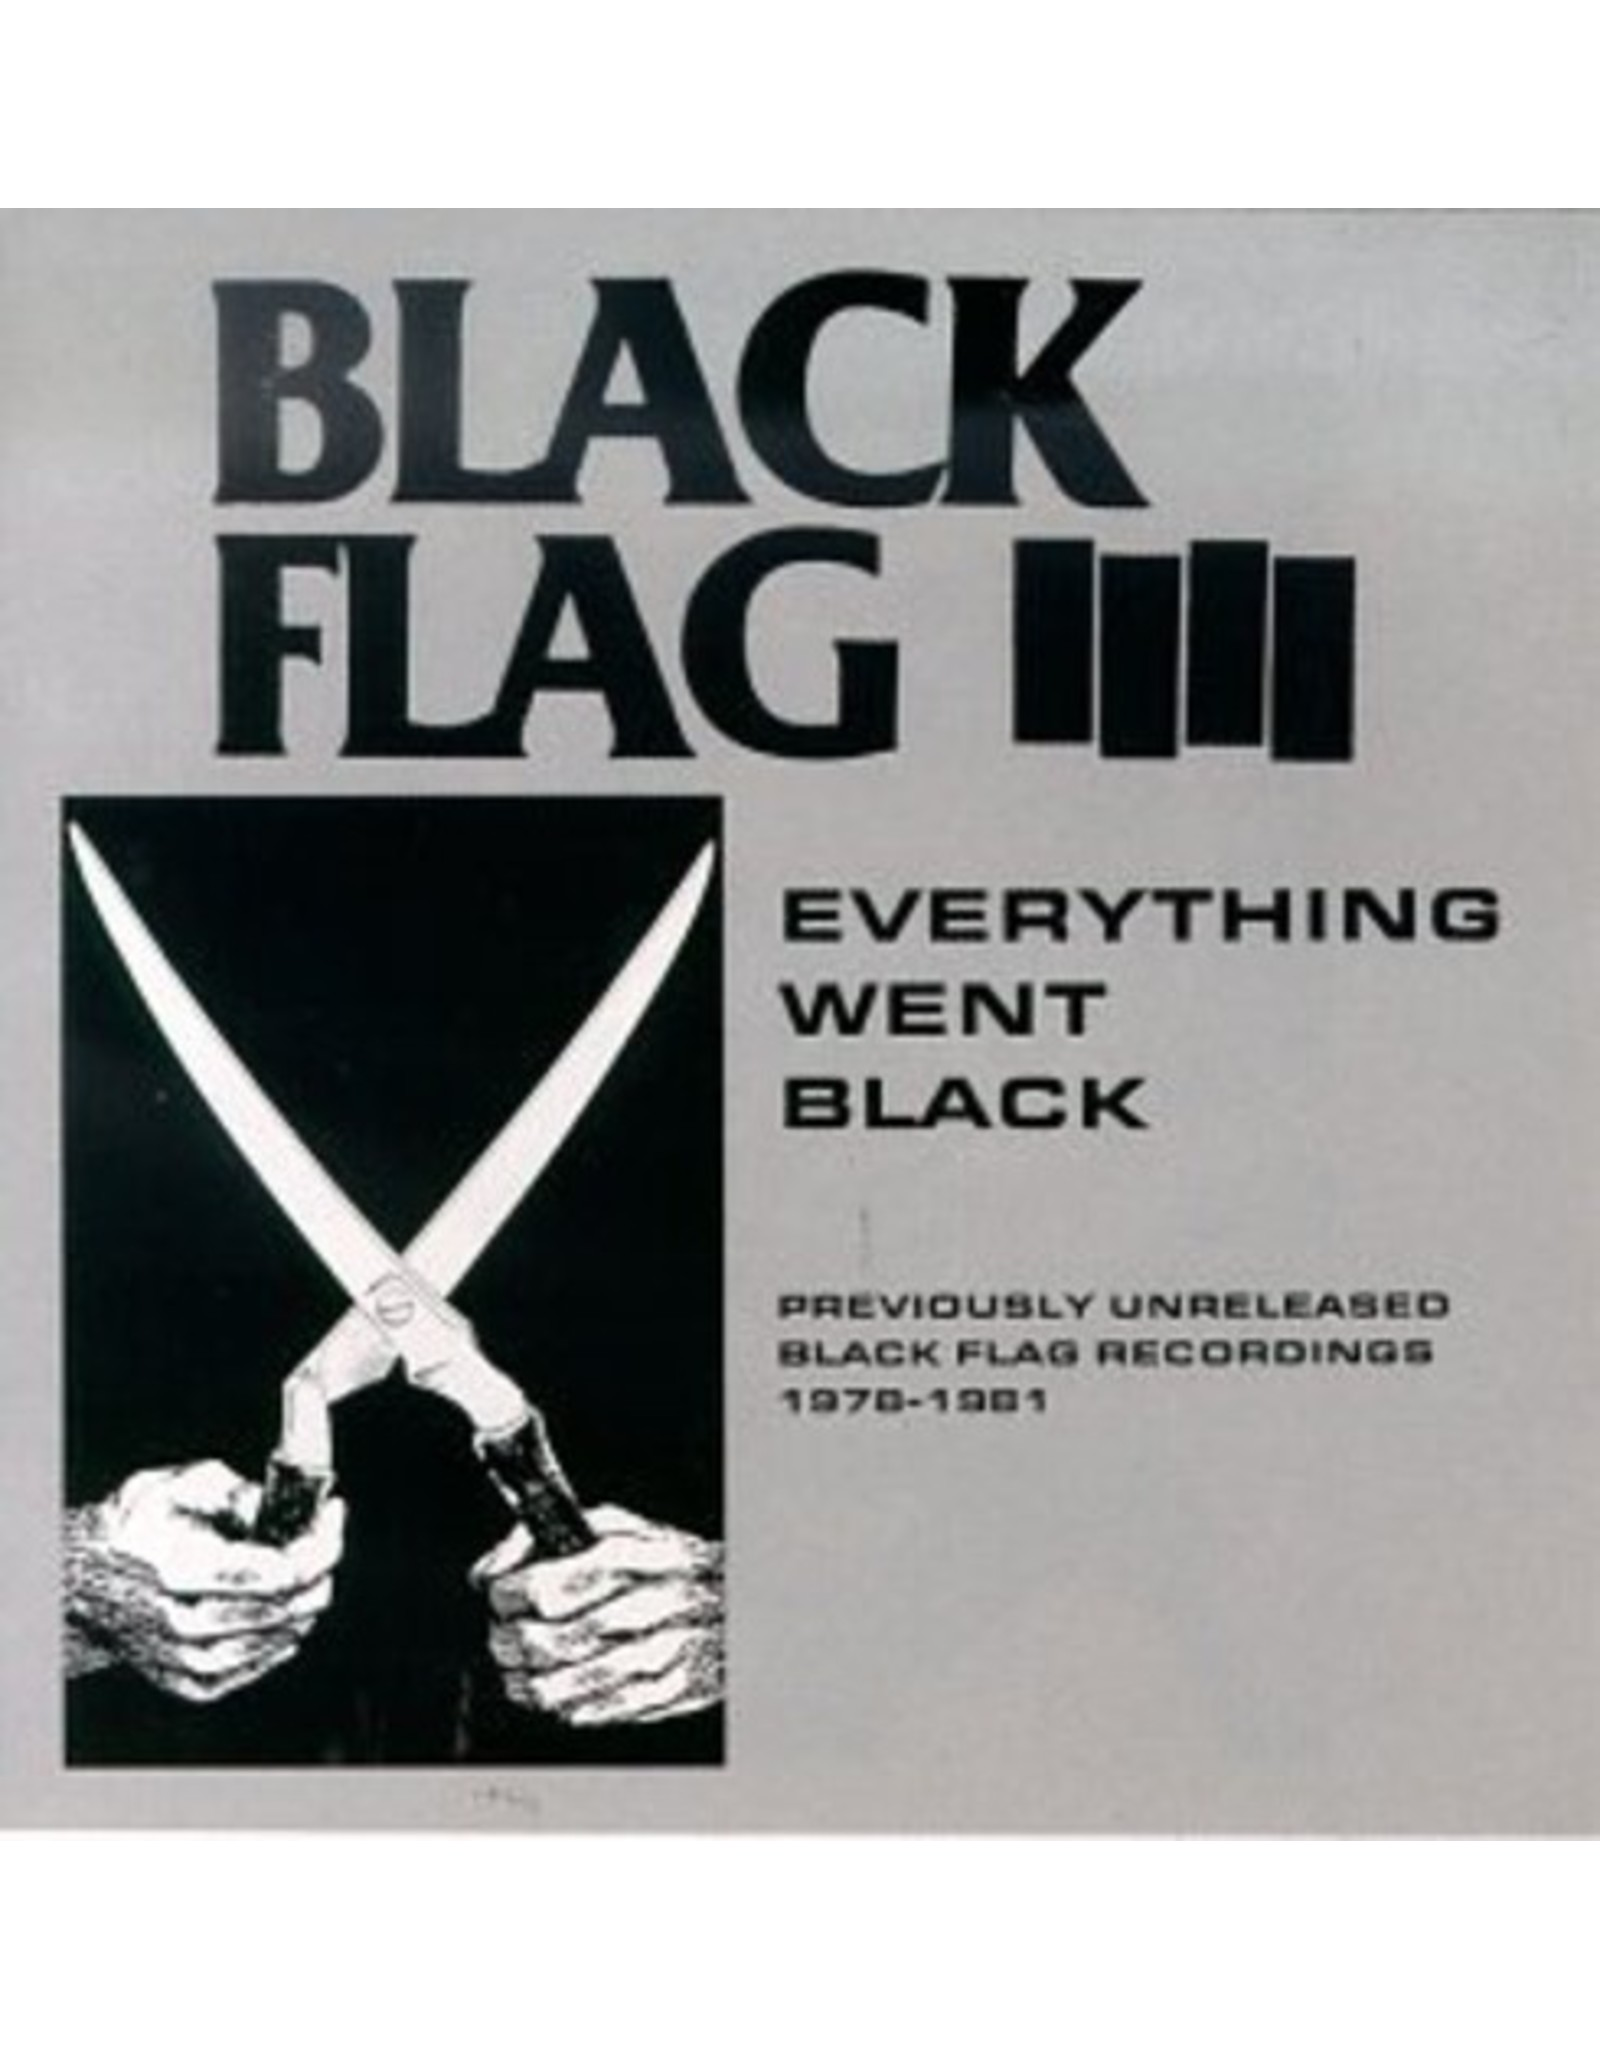 New Vinyl Black Flag - Everything Went Black 2LP